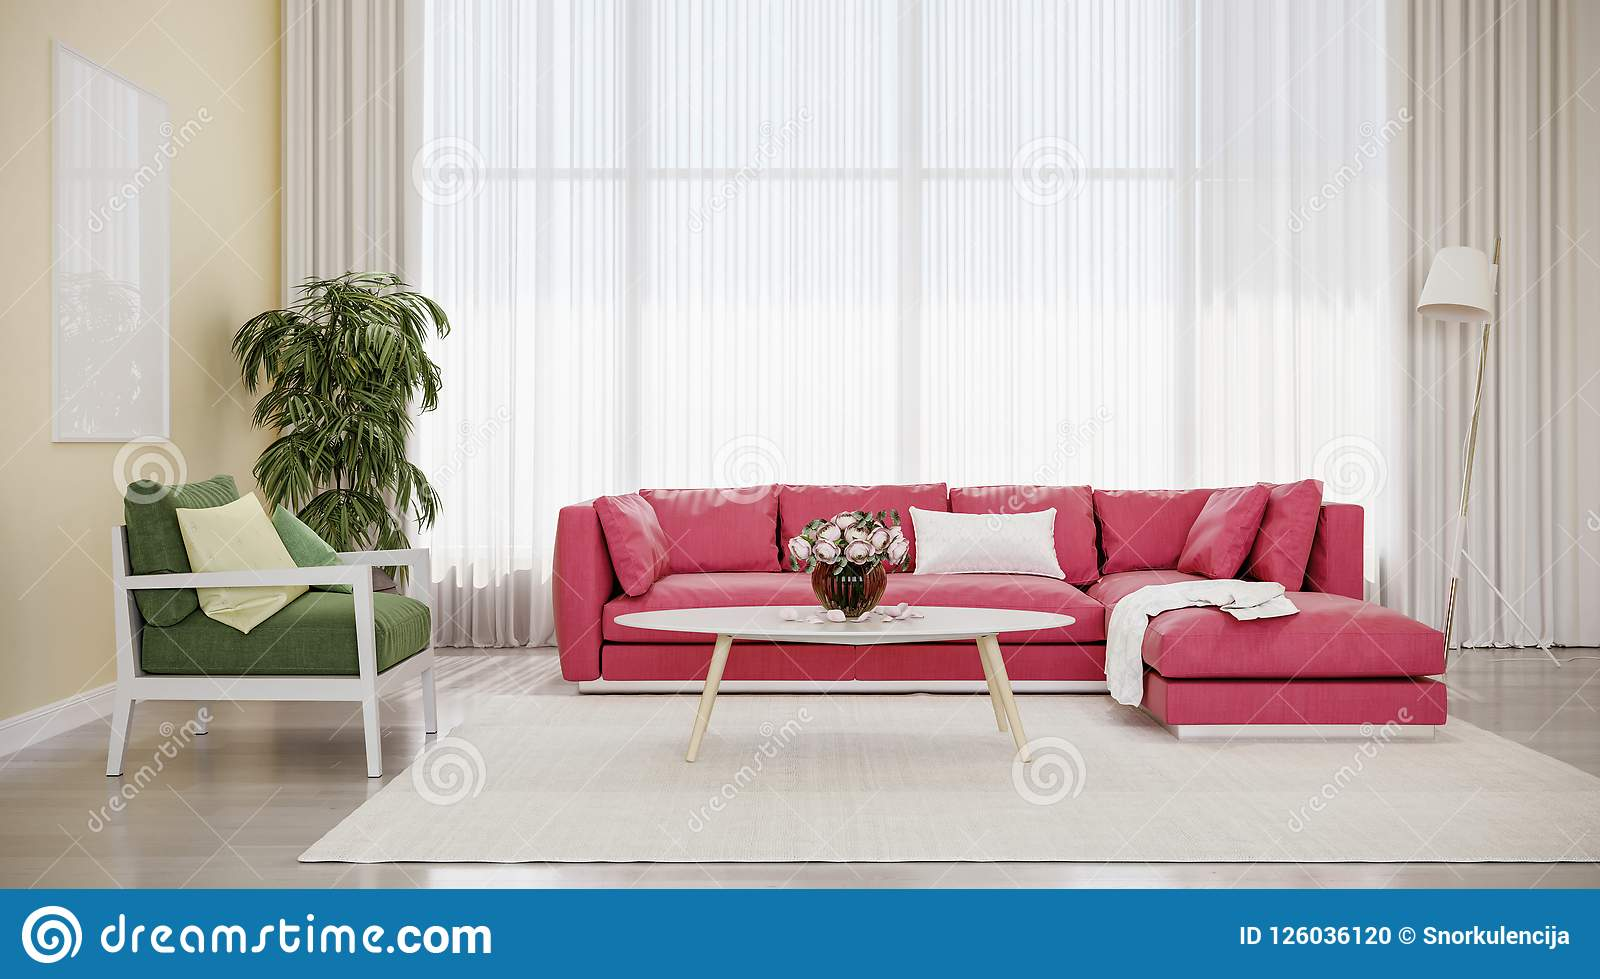 surprising red green living room | Modern Design Interior Living Room, Red Sofa With Green ...